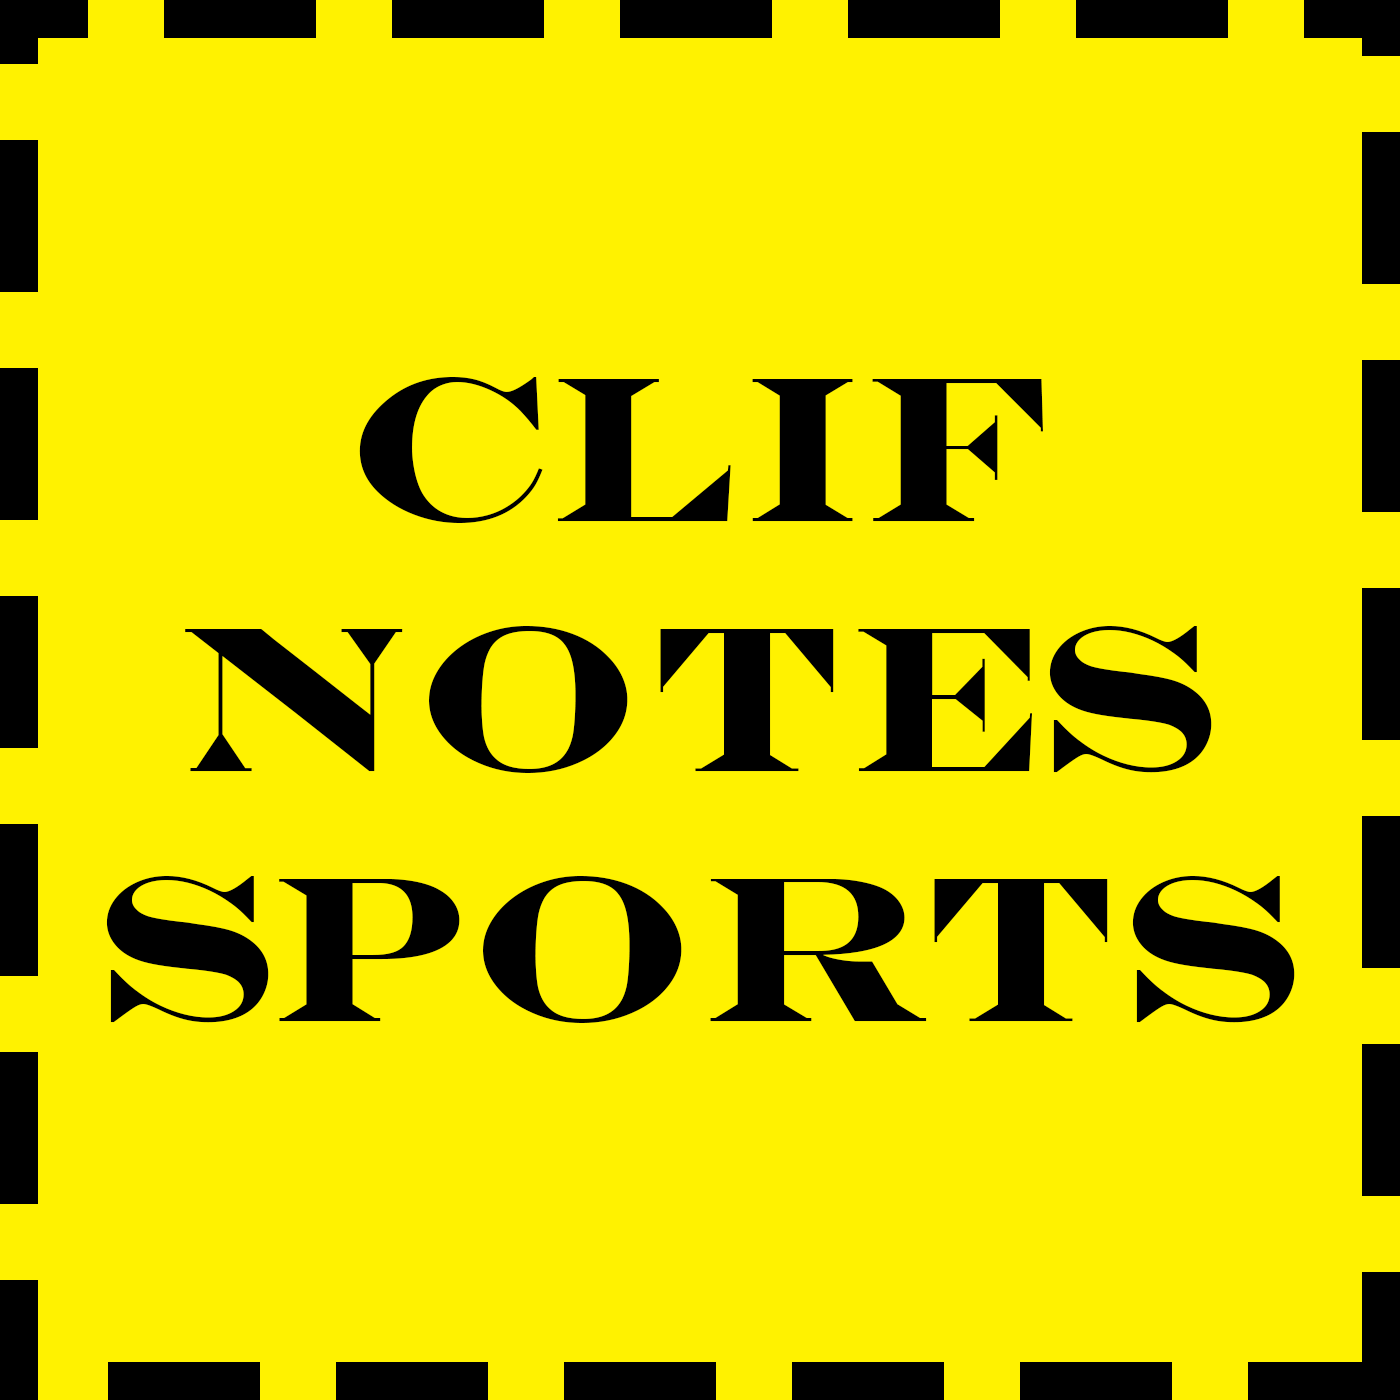 Clif Notes Sports